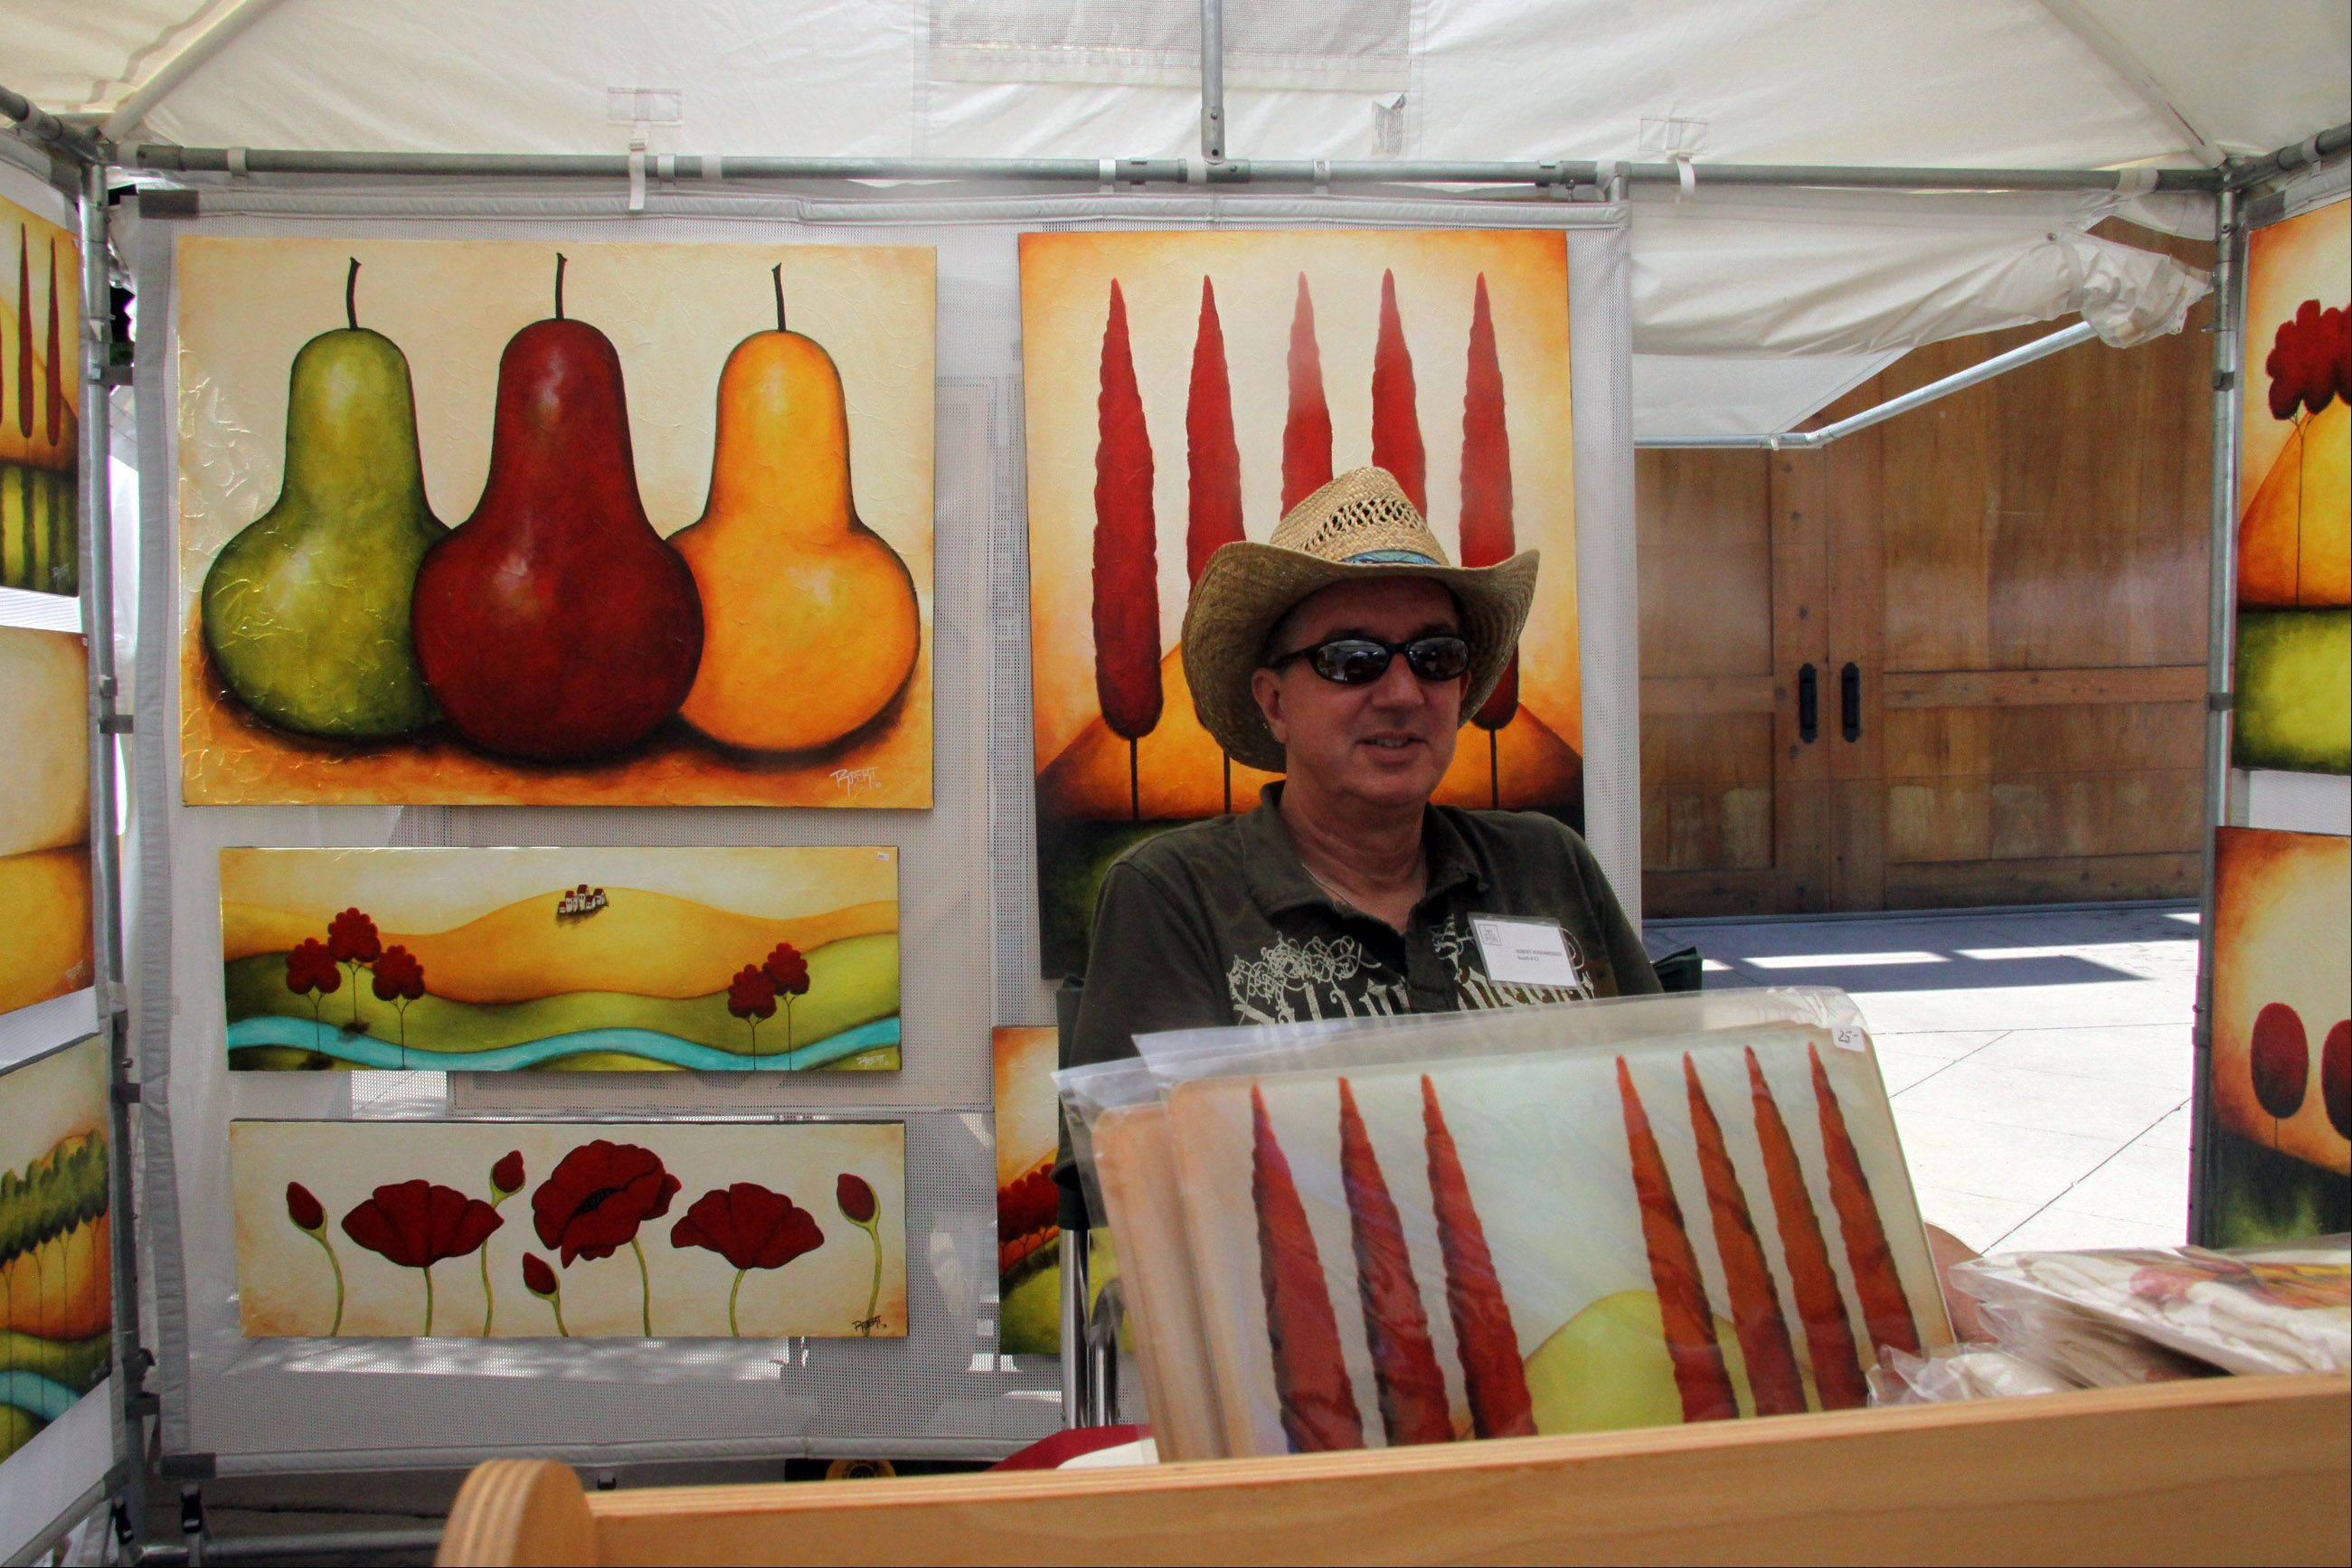 The Art at the Shops festival returns to Yorktown Center in Lombard this weekend with 50 juried artists from all over the country. Robert Rodenberger of Marietta, Ga., was among those who exhibited last year.